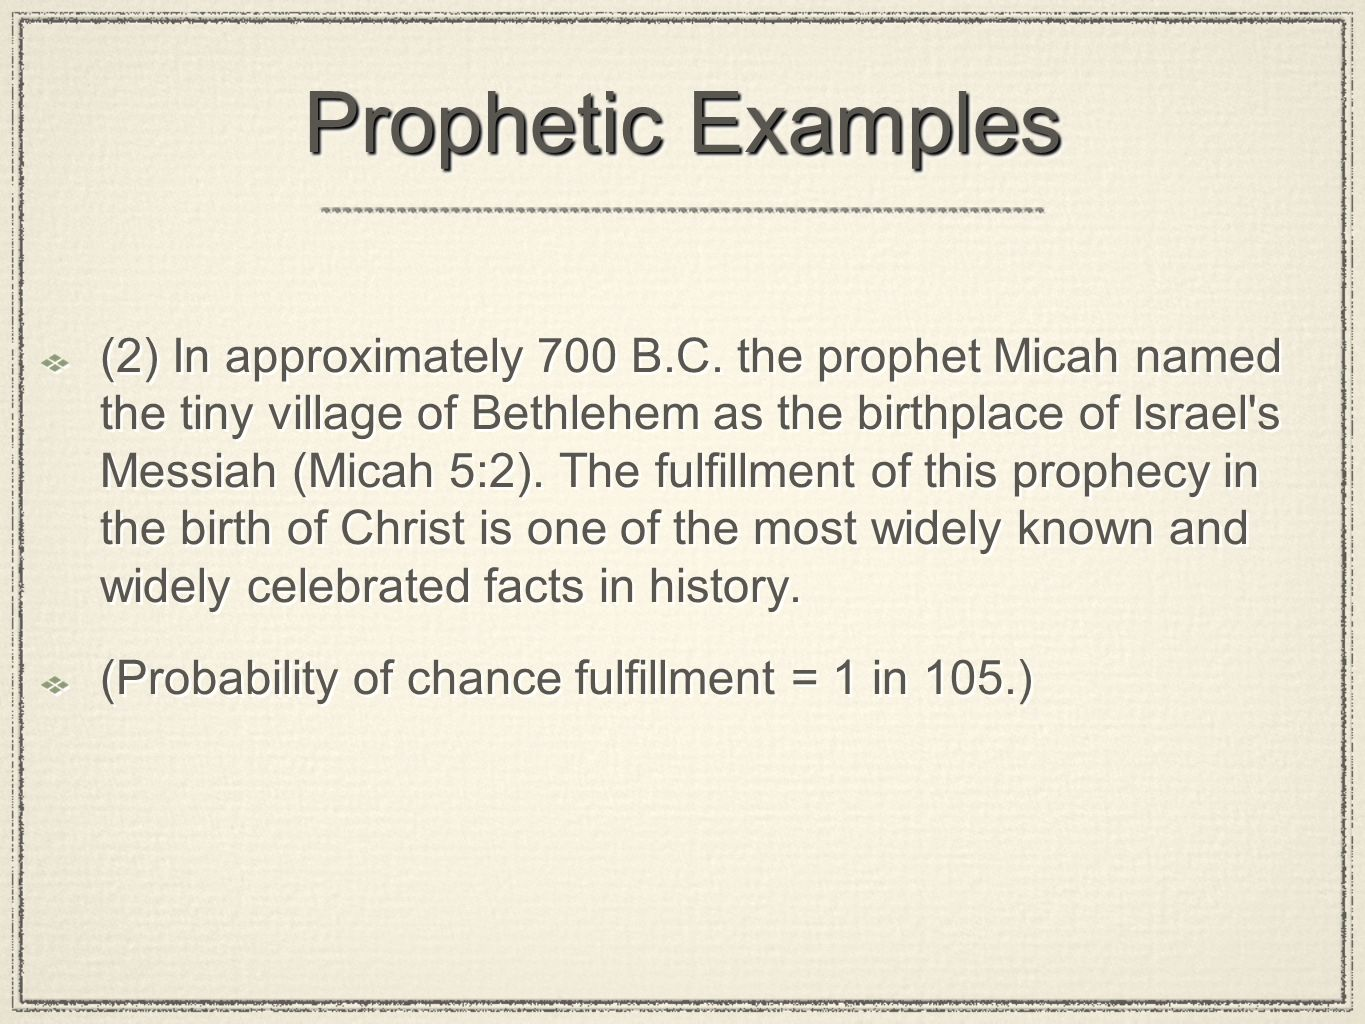 Prophetic Examples (2) In approximately 700 B.C. the prophet Micah named the tiny village of Bethlehem as the birthplace of Israel's Messiah (Micah 5: